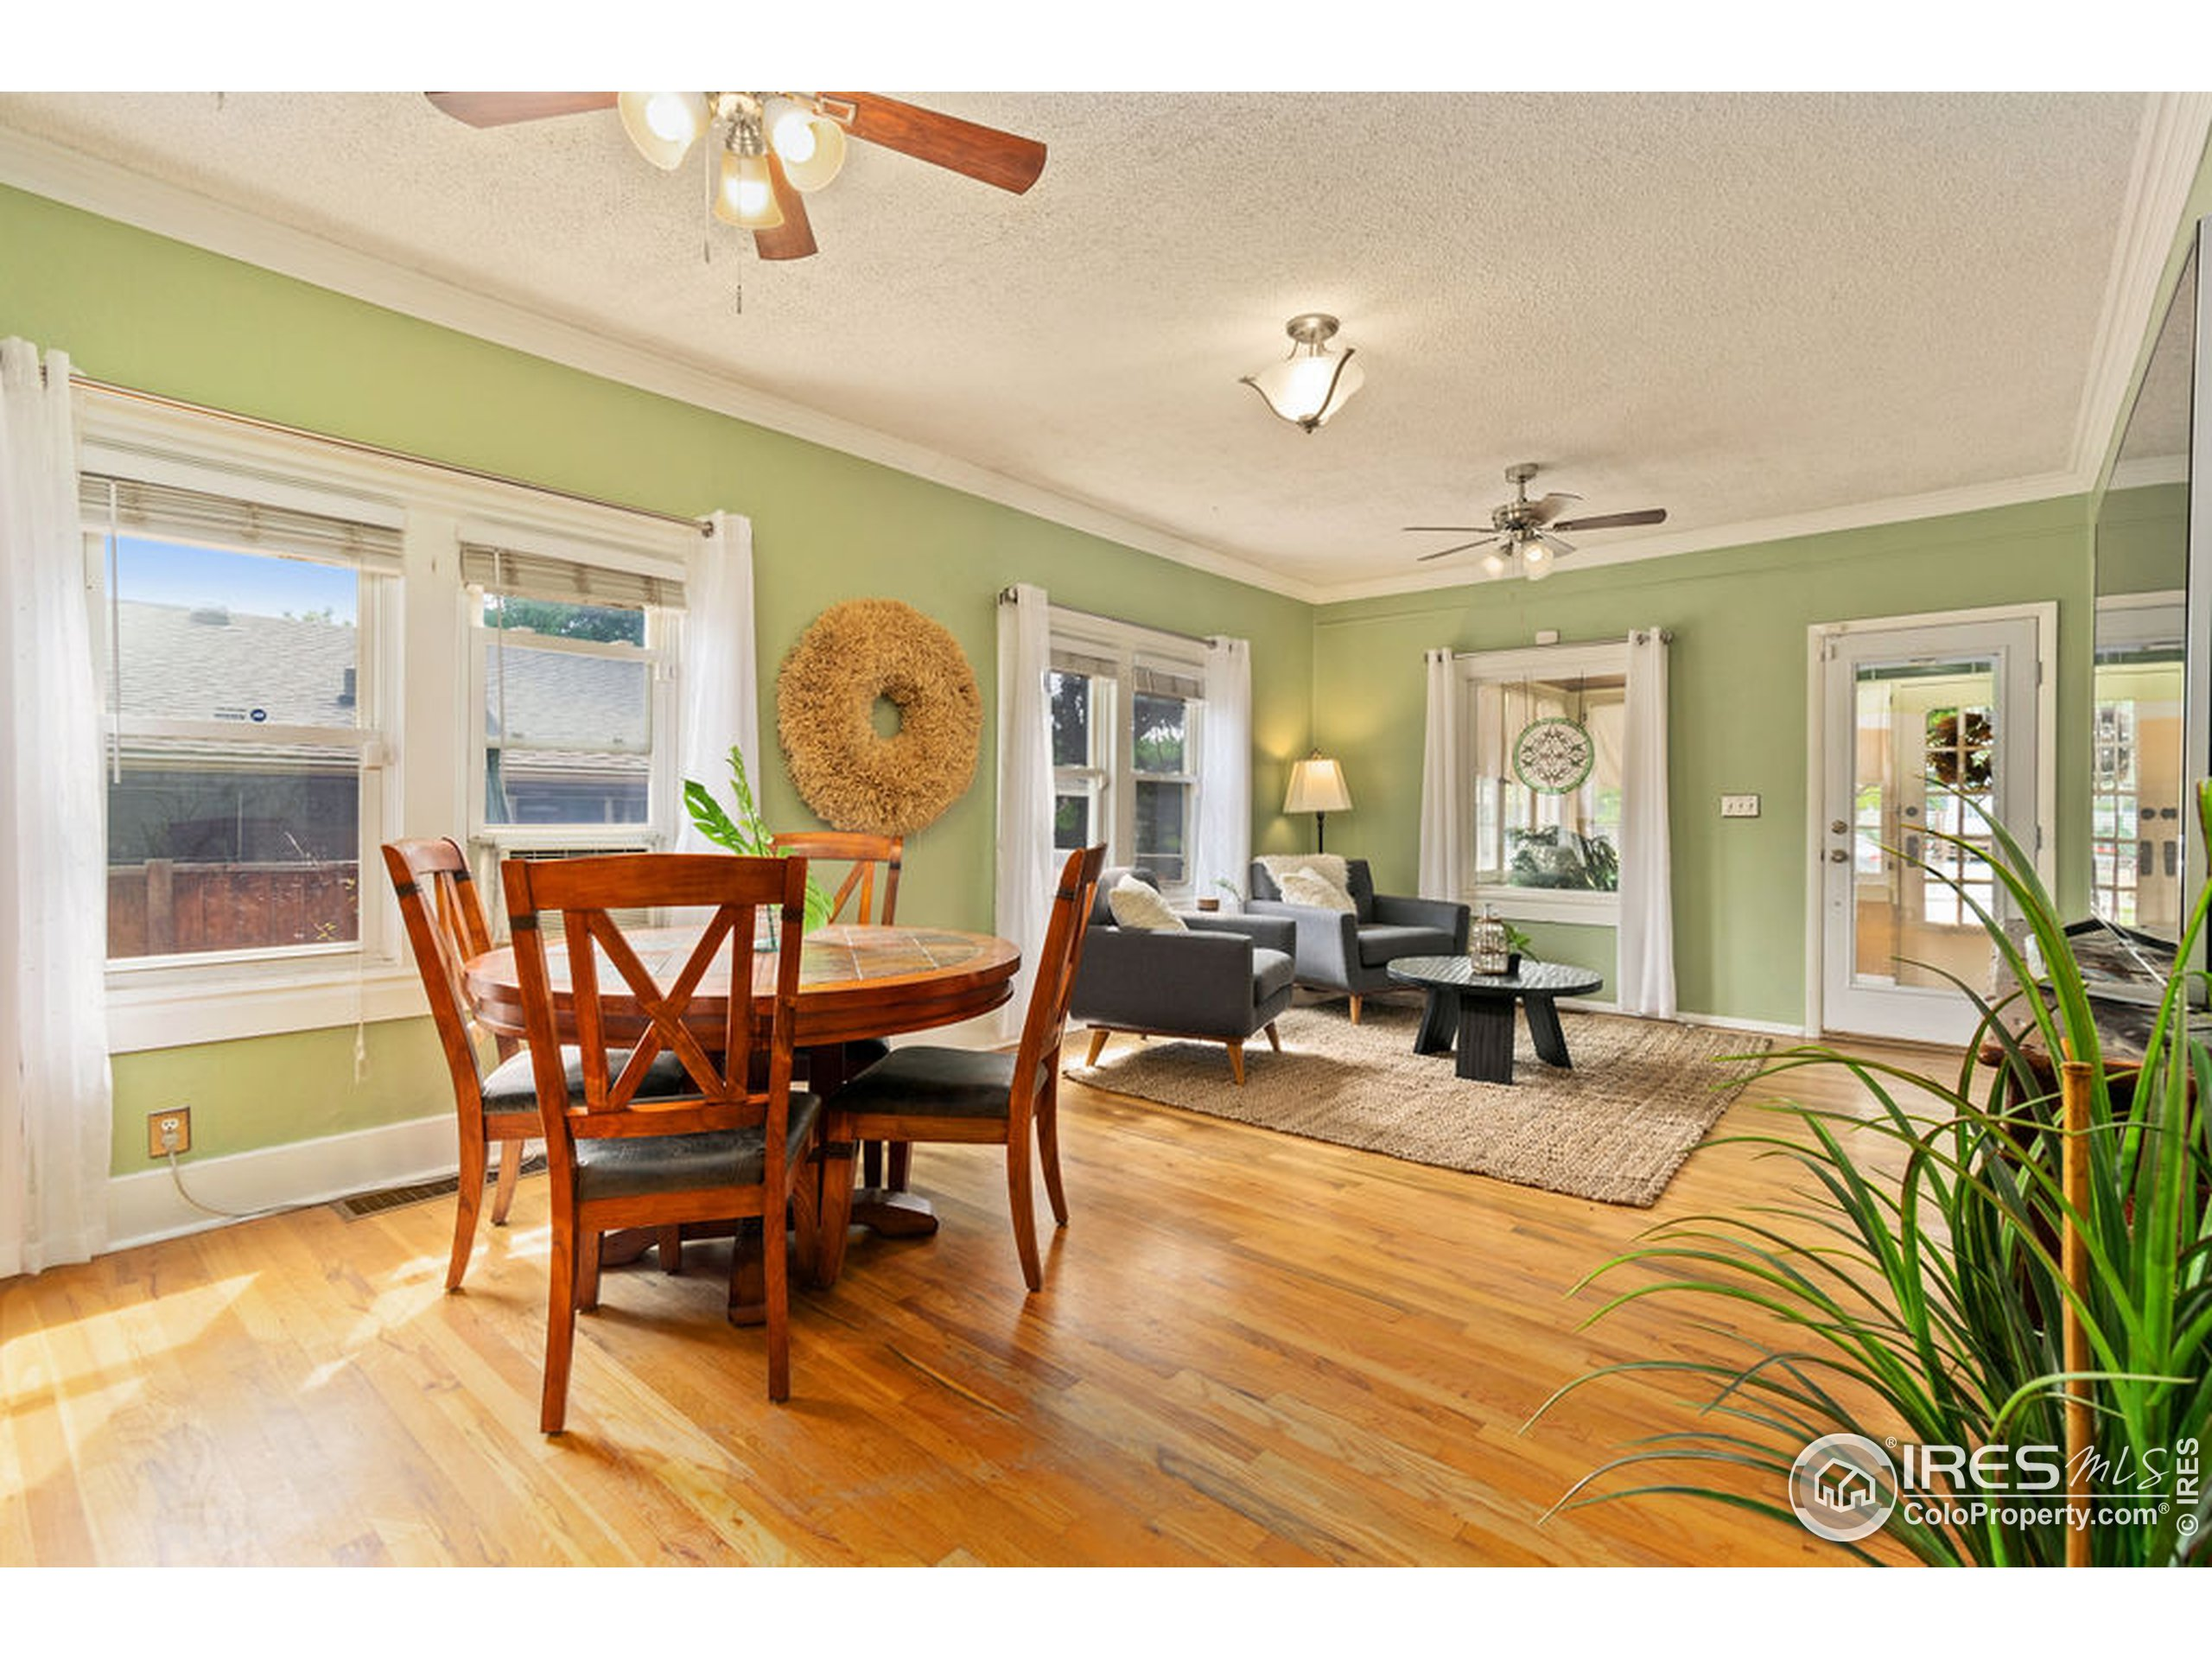 Beautiful wood floors throughout this home.